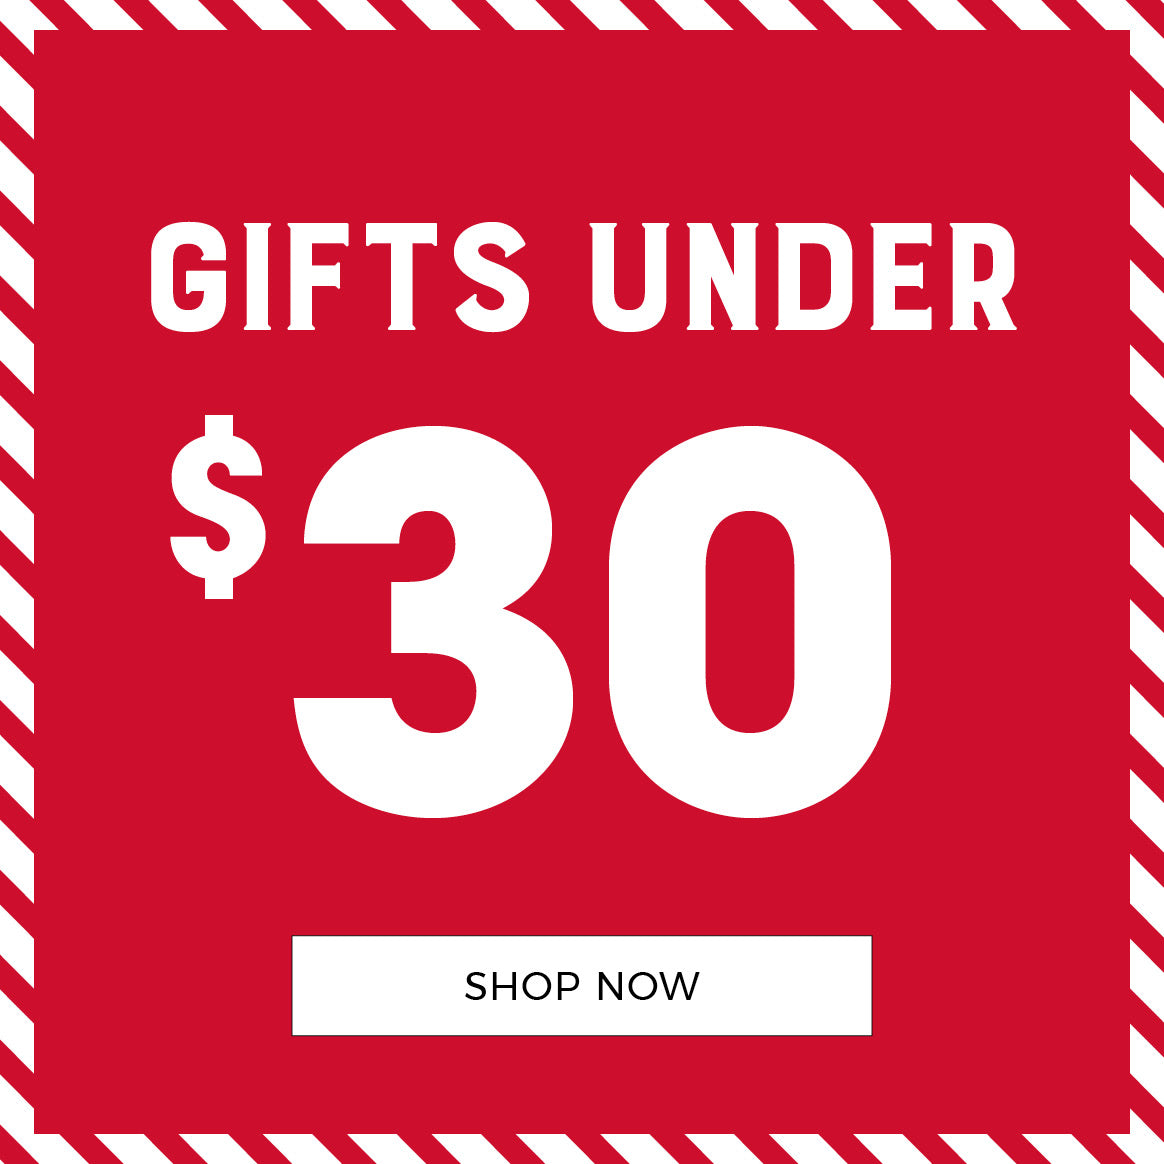 Stitches | Gifts Under $30 - Shop Now